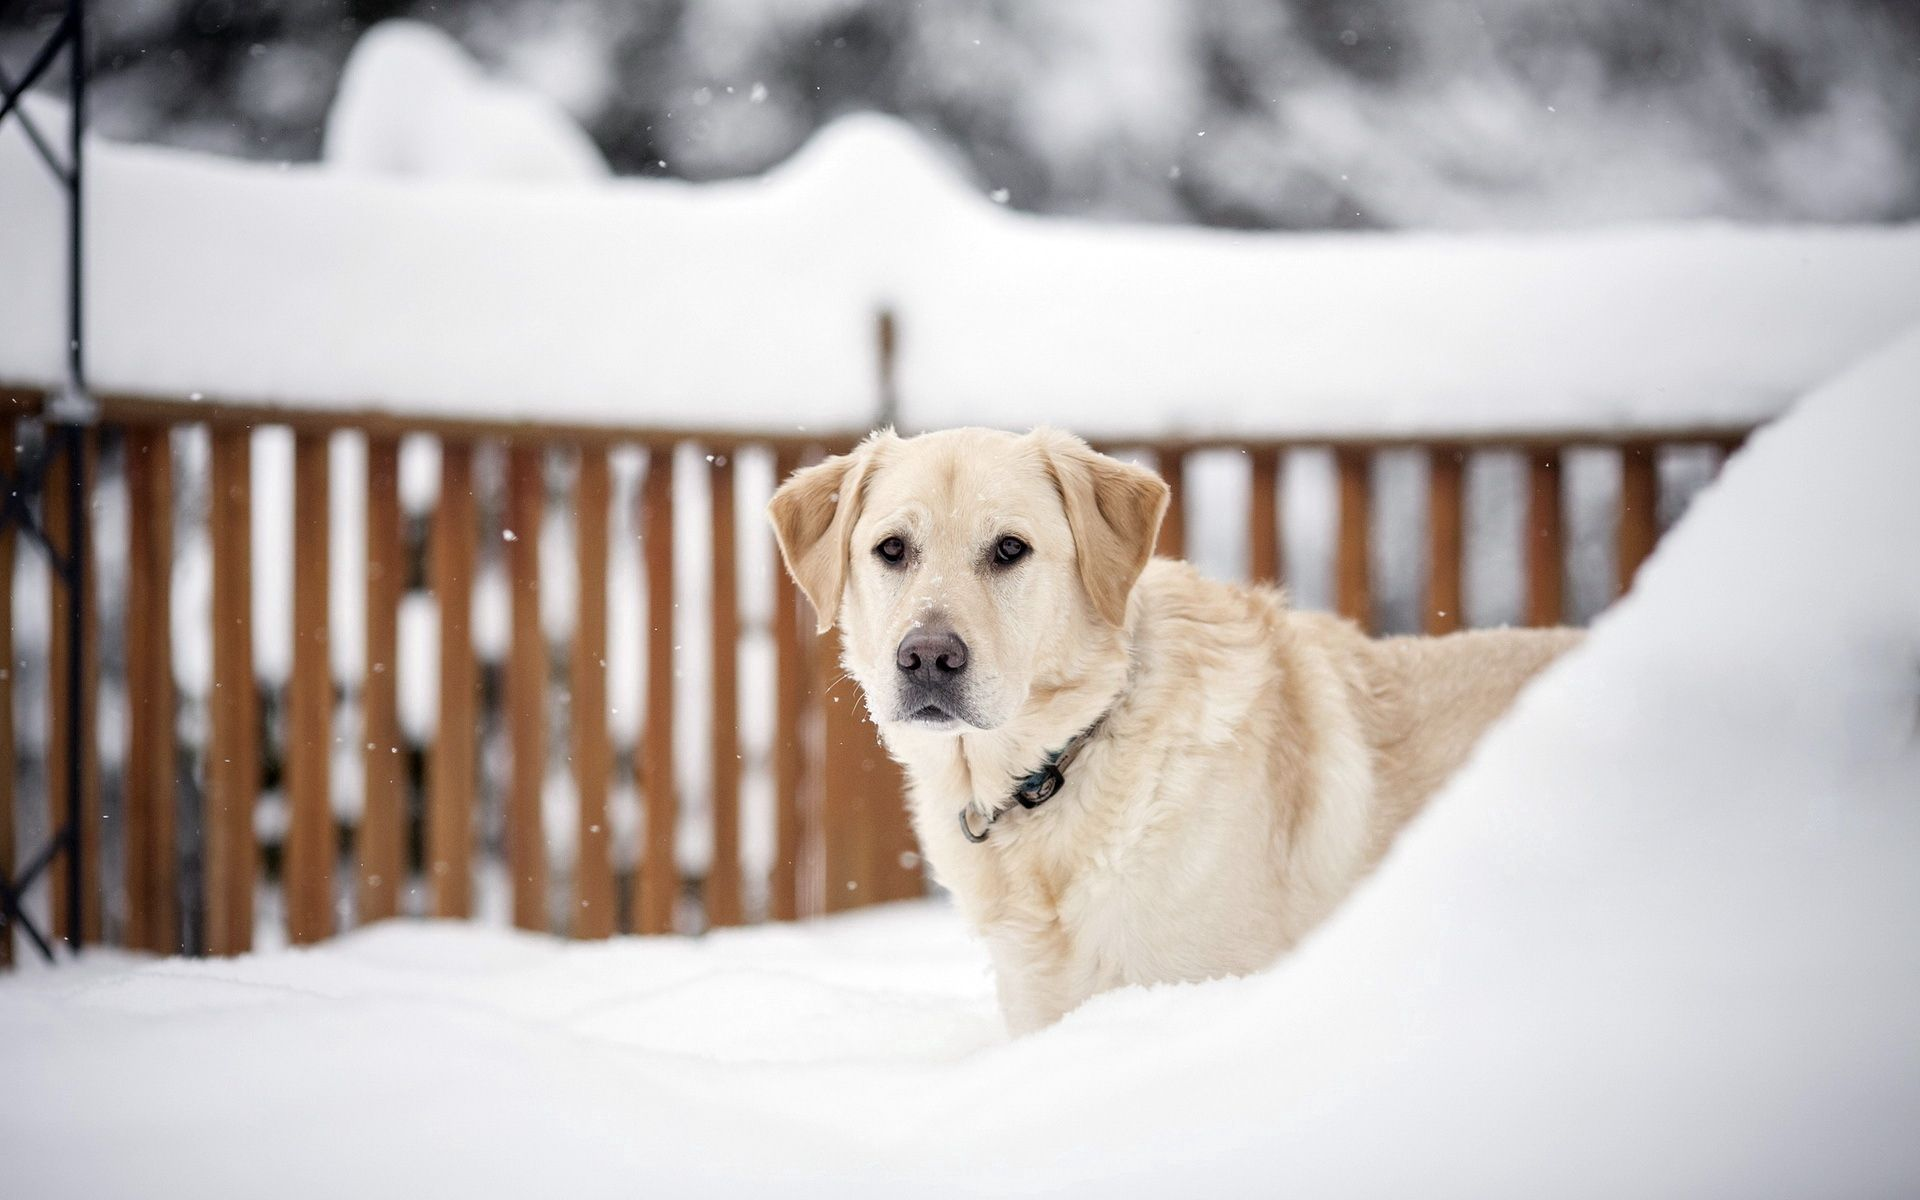 139619 download wallpaper Animals, Dog, Snow, Muzzle, Sight, Opinion, Stroll screensavers and pictures for free